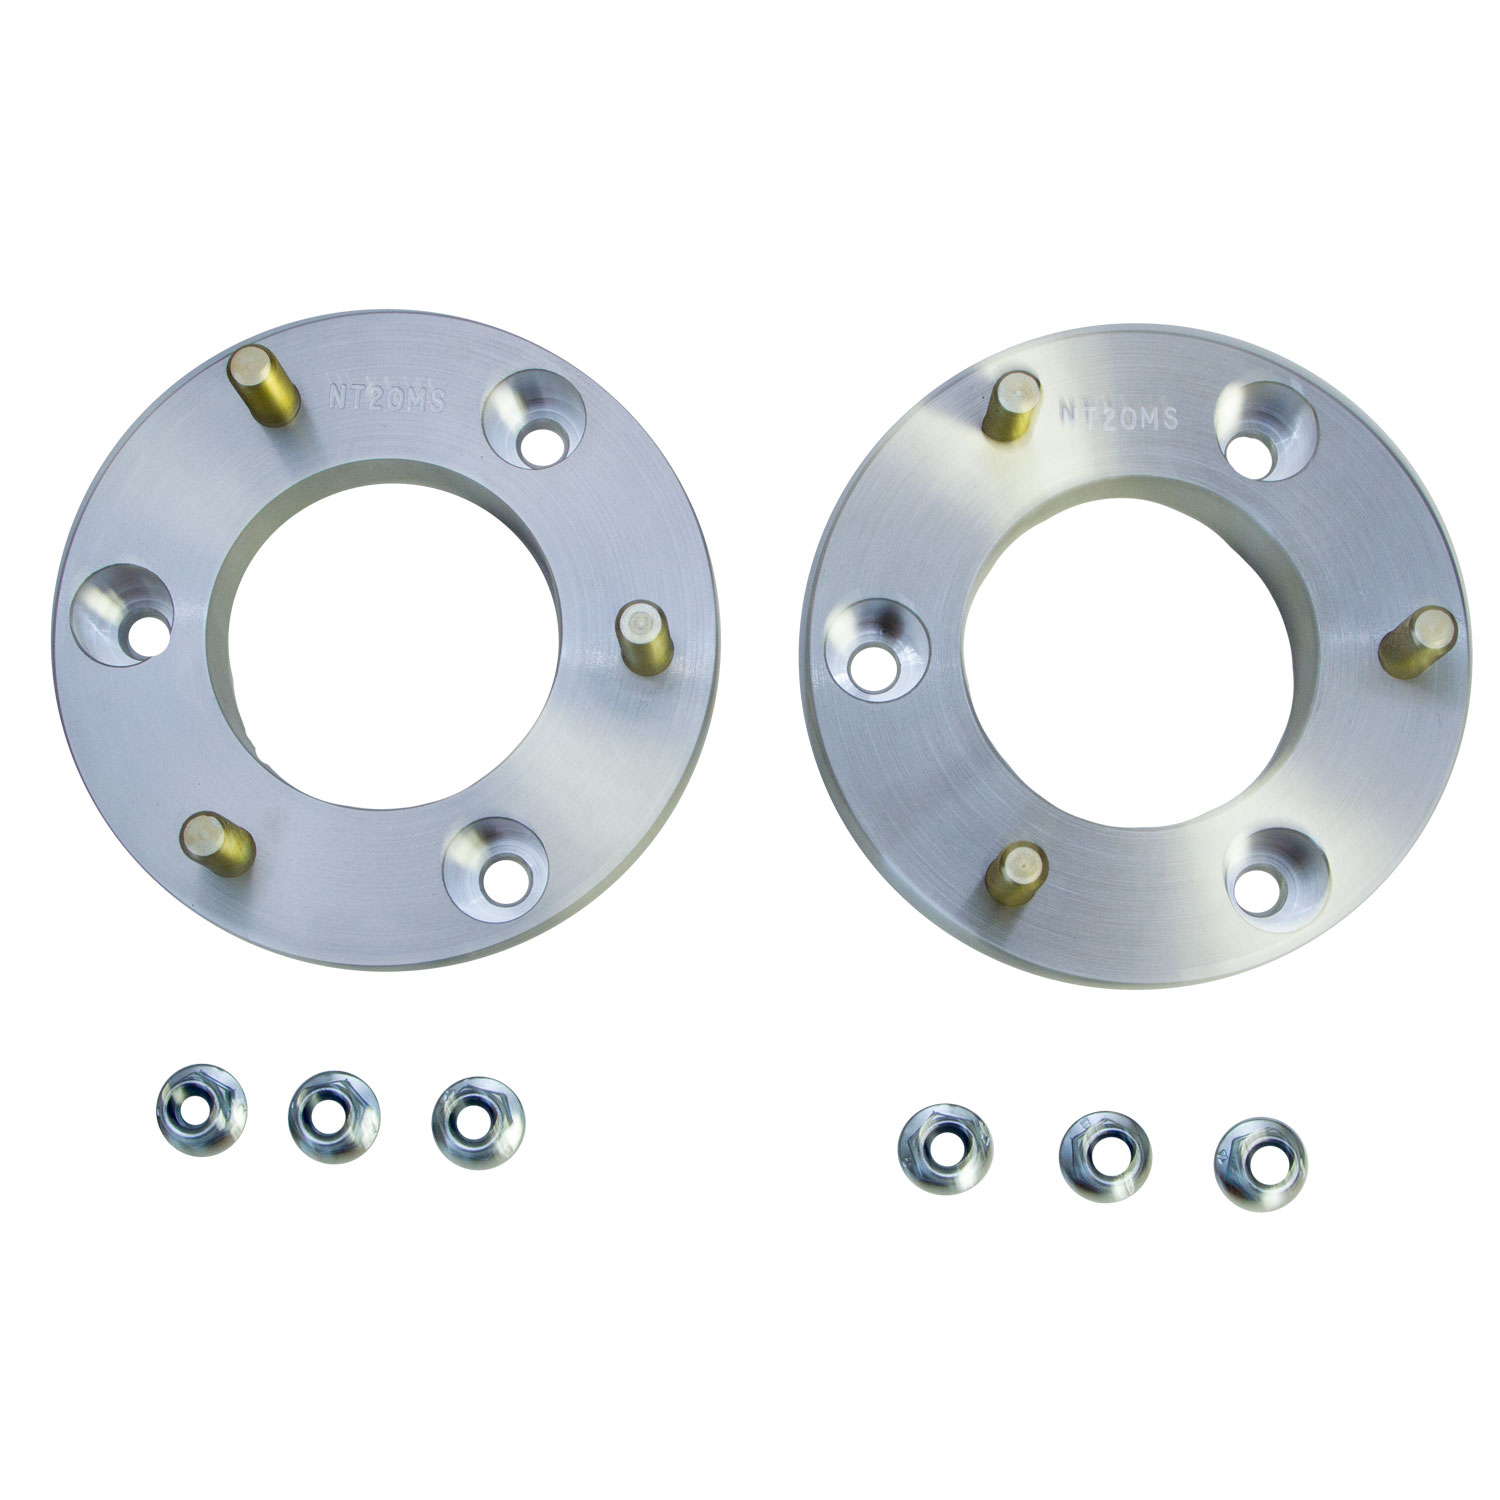 hight resolution of nt20ms 2 in metal spacer leveling kit